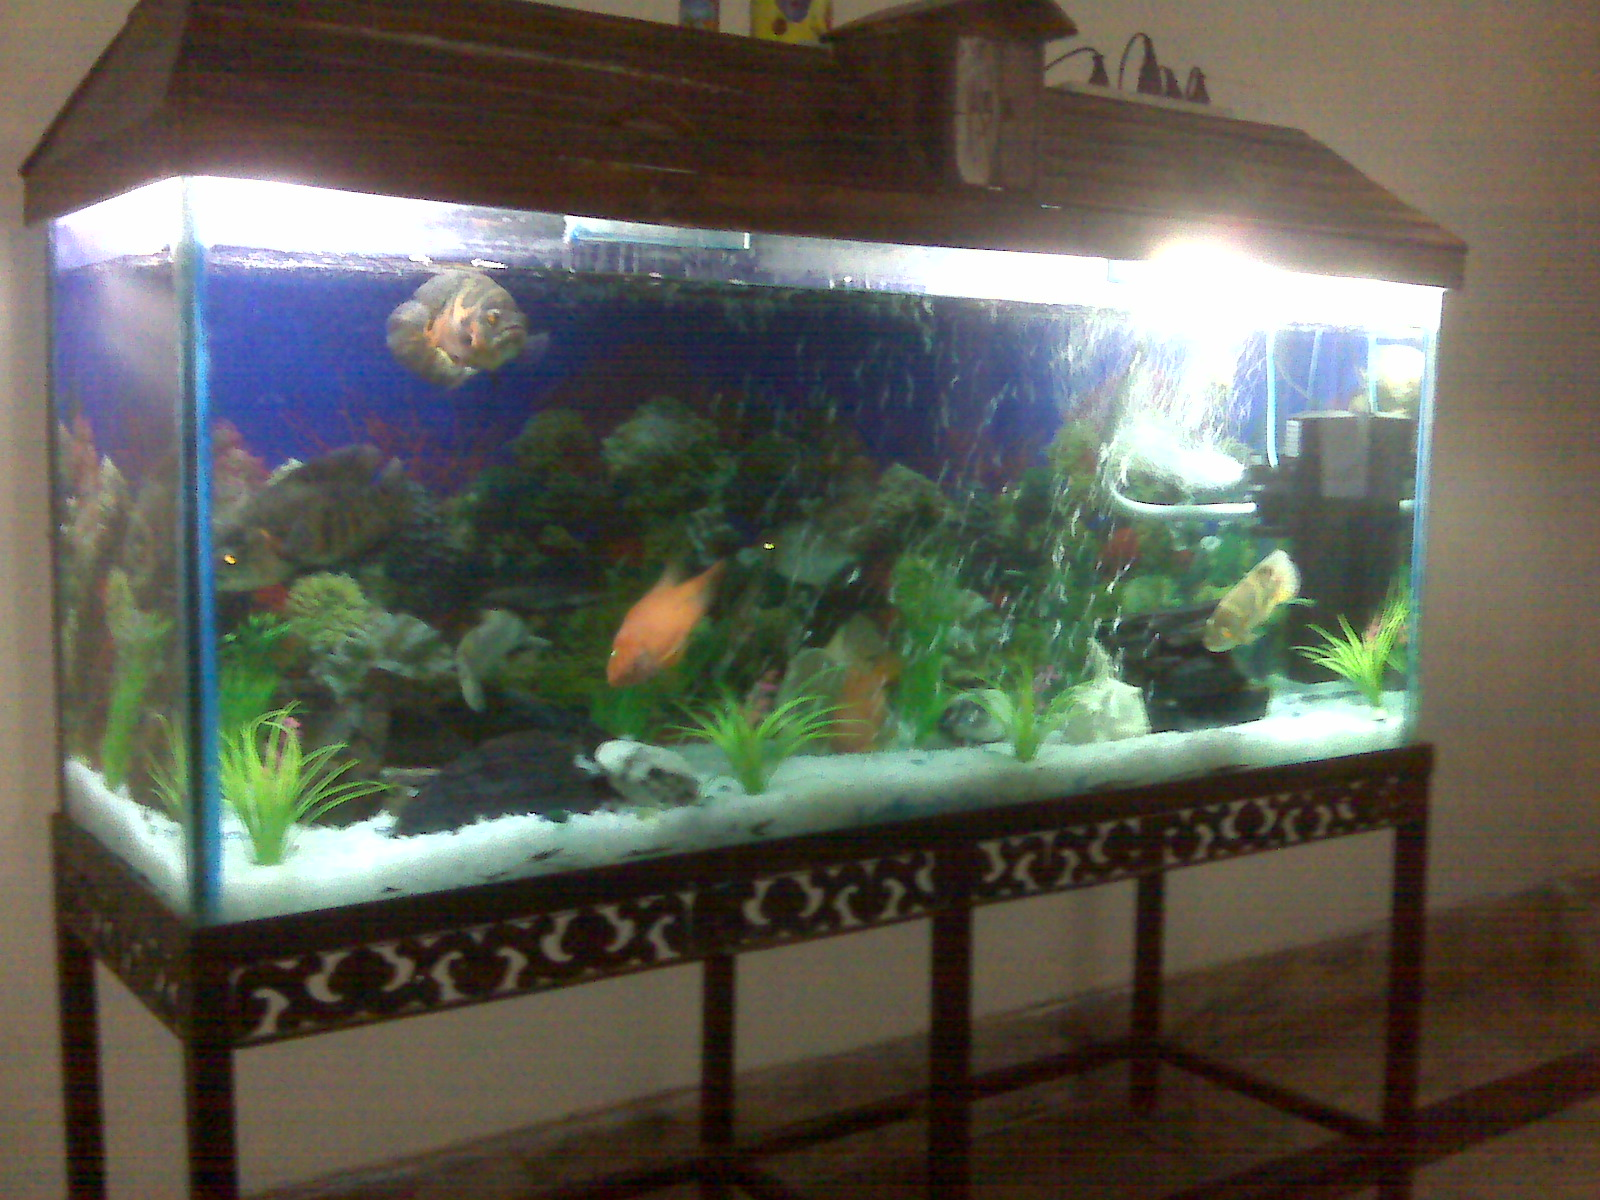 Fish aquarium for sale in lahore -  Feet Aquarium For Sale At A Very Genuine Price Fish